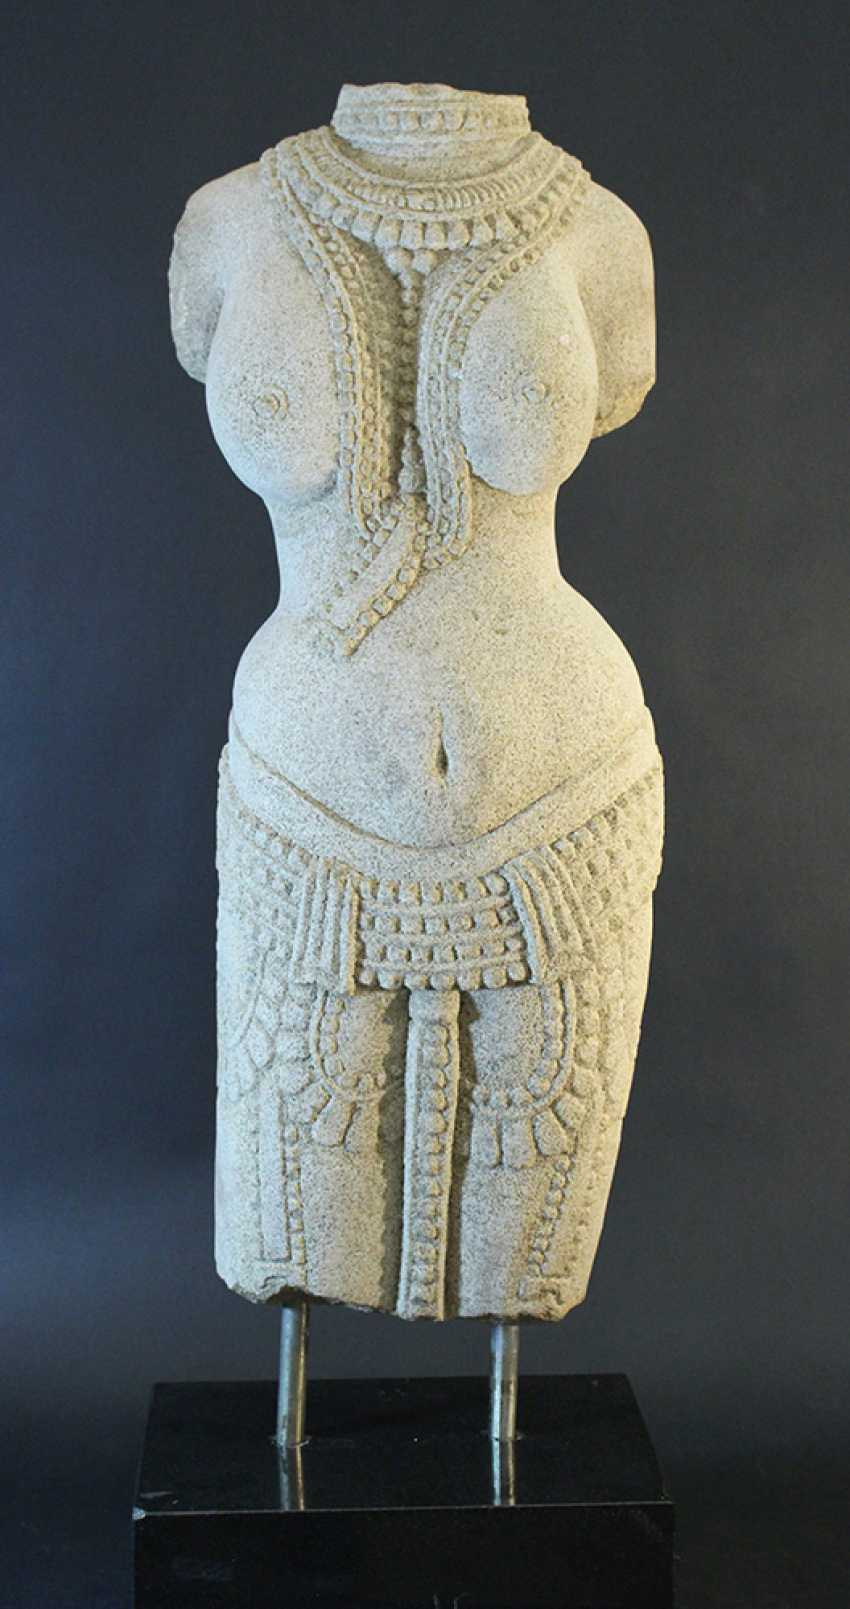 Indian stone scultpure of a female torso with necklaces and jewelry around the hips - photo 1